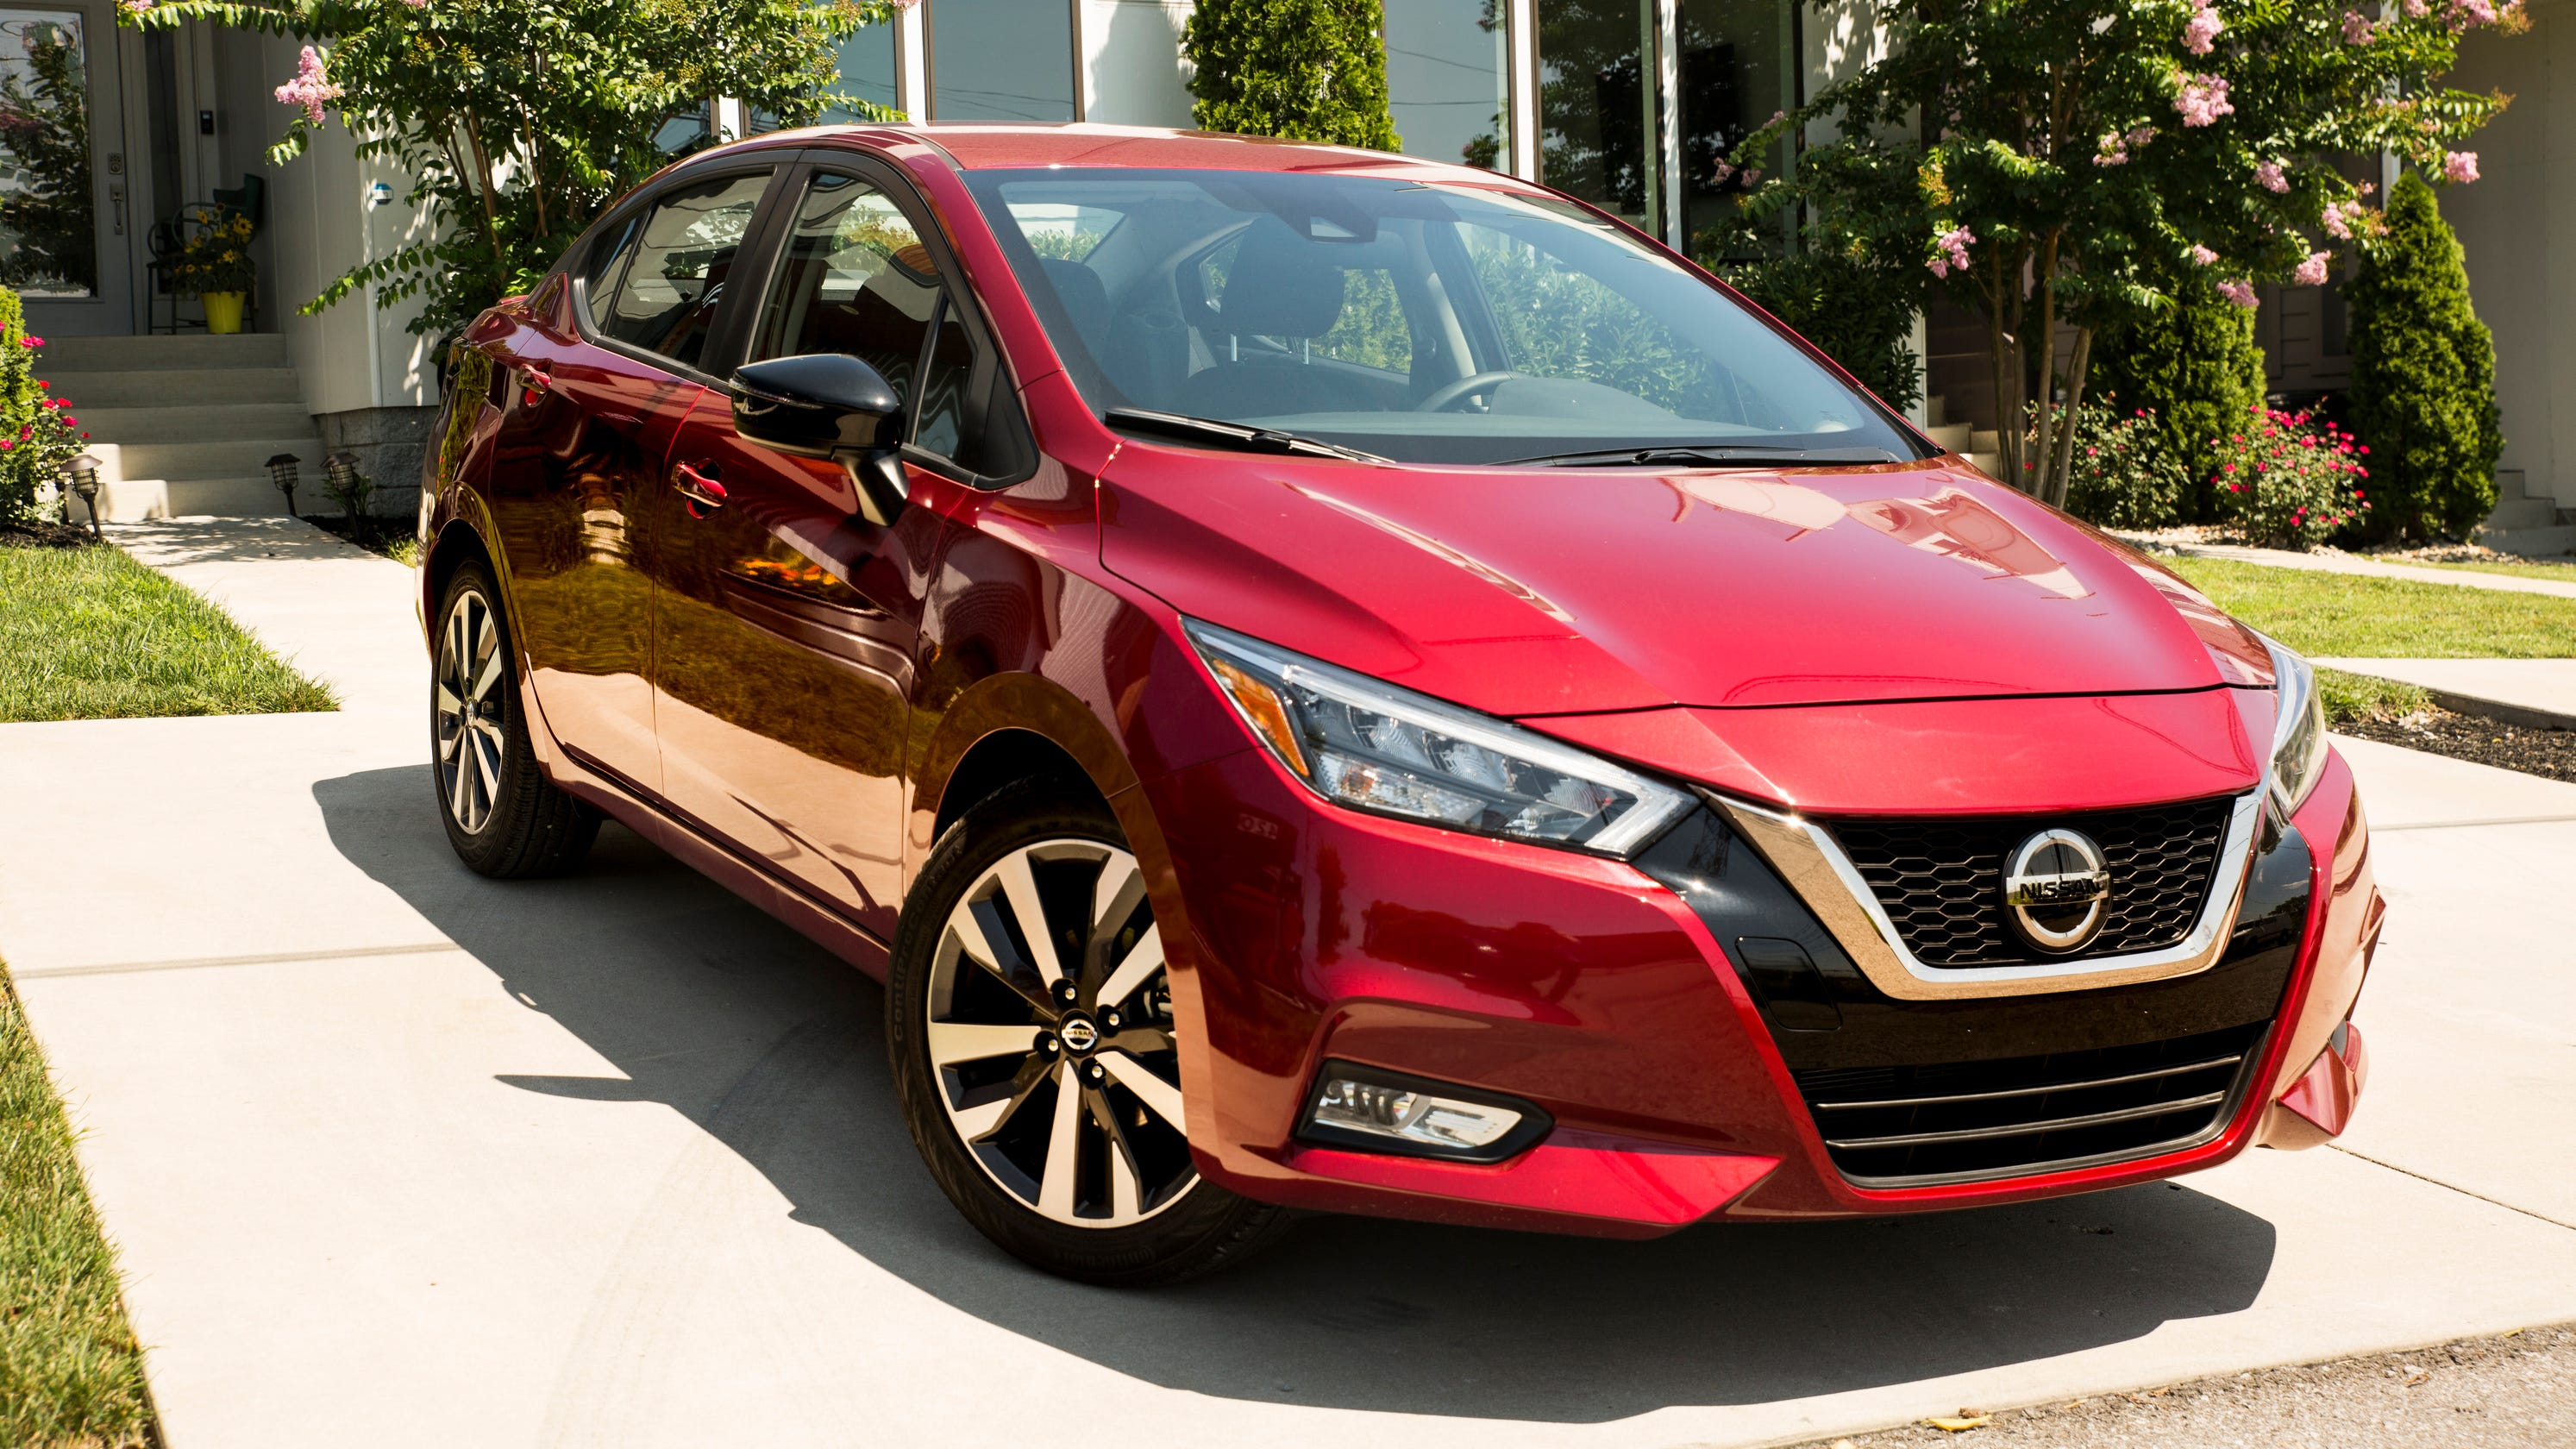 Looking For A Cheap Date The 2020 Nissan Versa May Be Your Ride